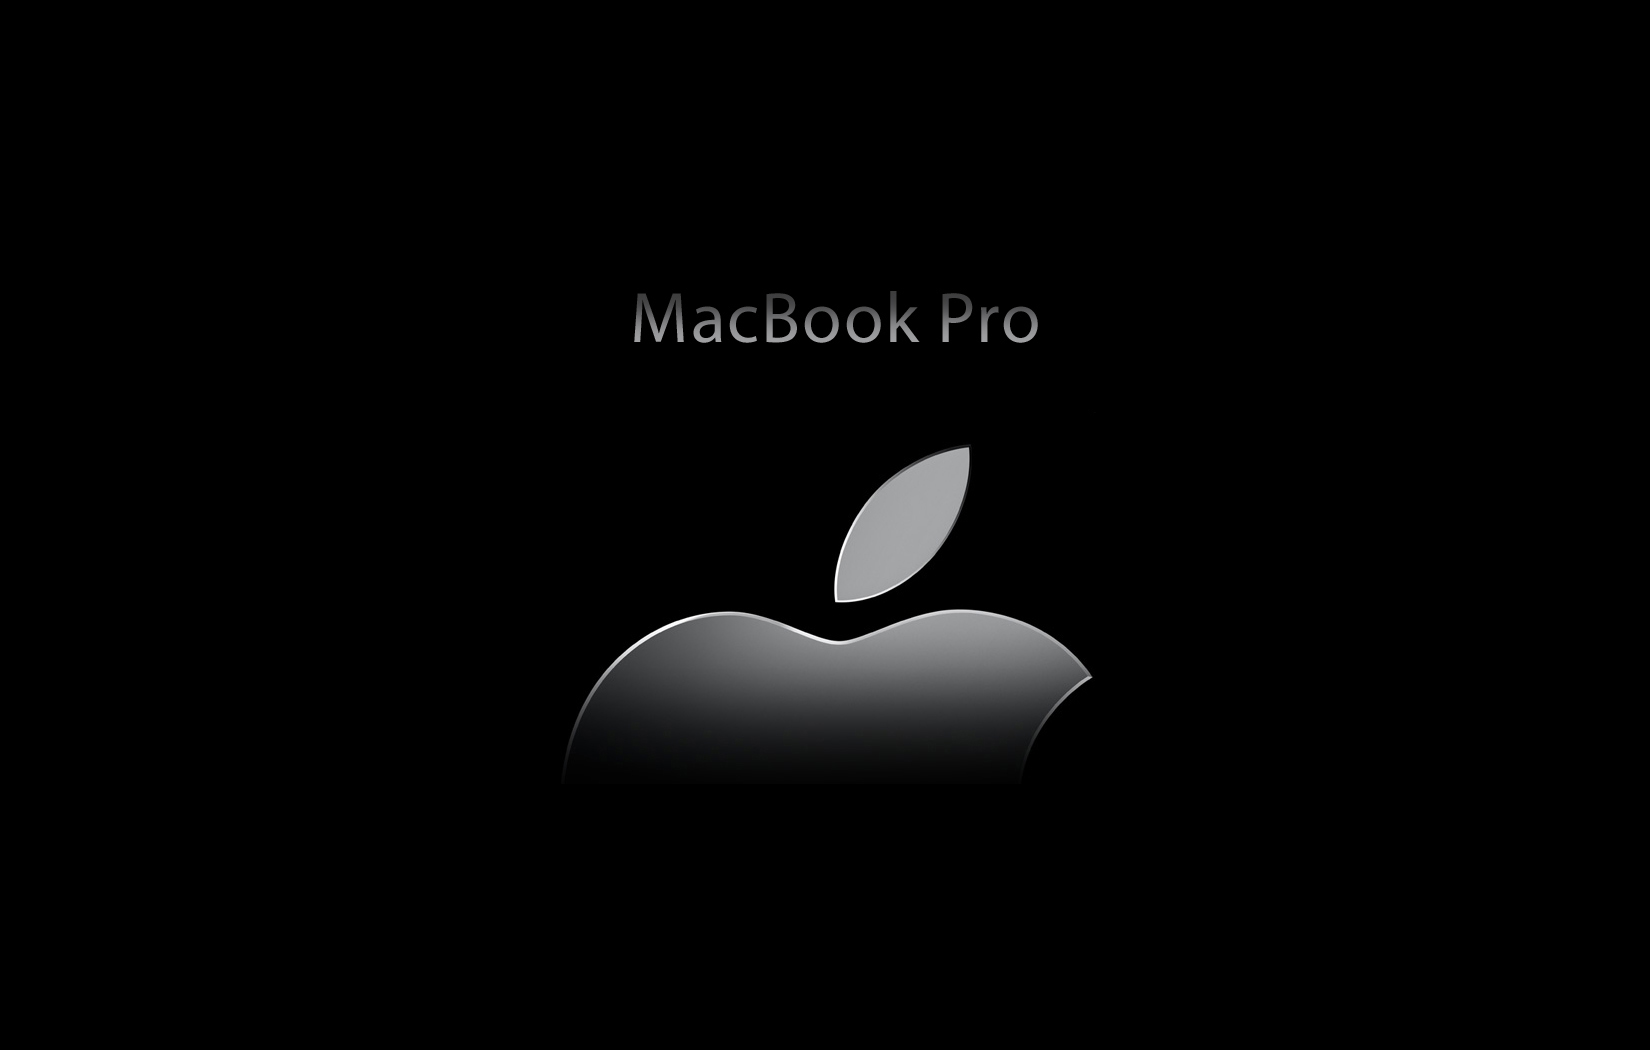 Awesome Wallpapers For Macbook Pro